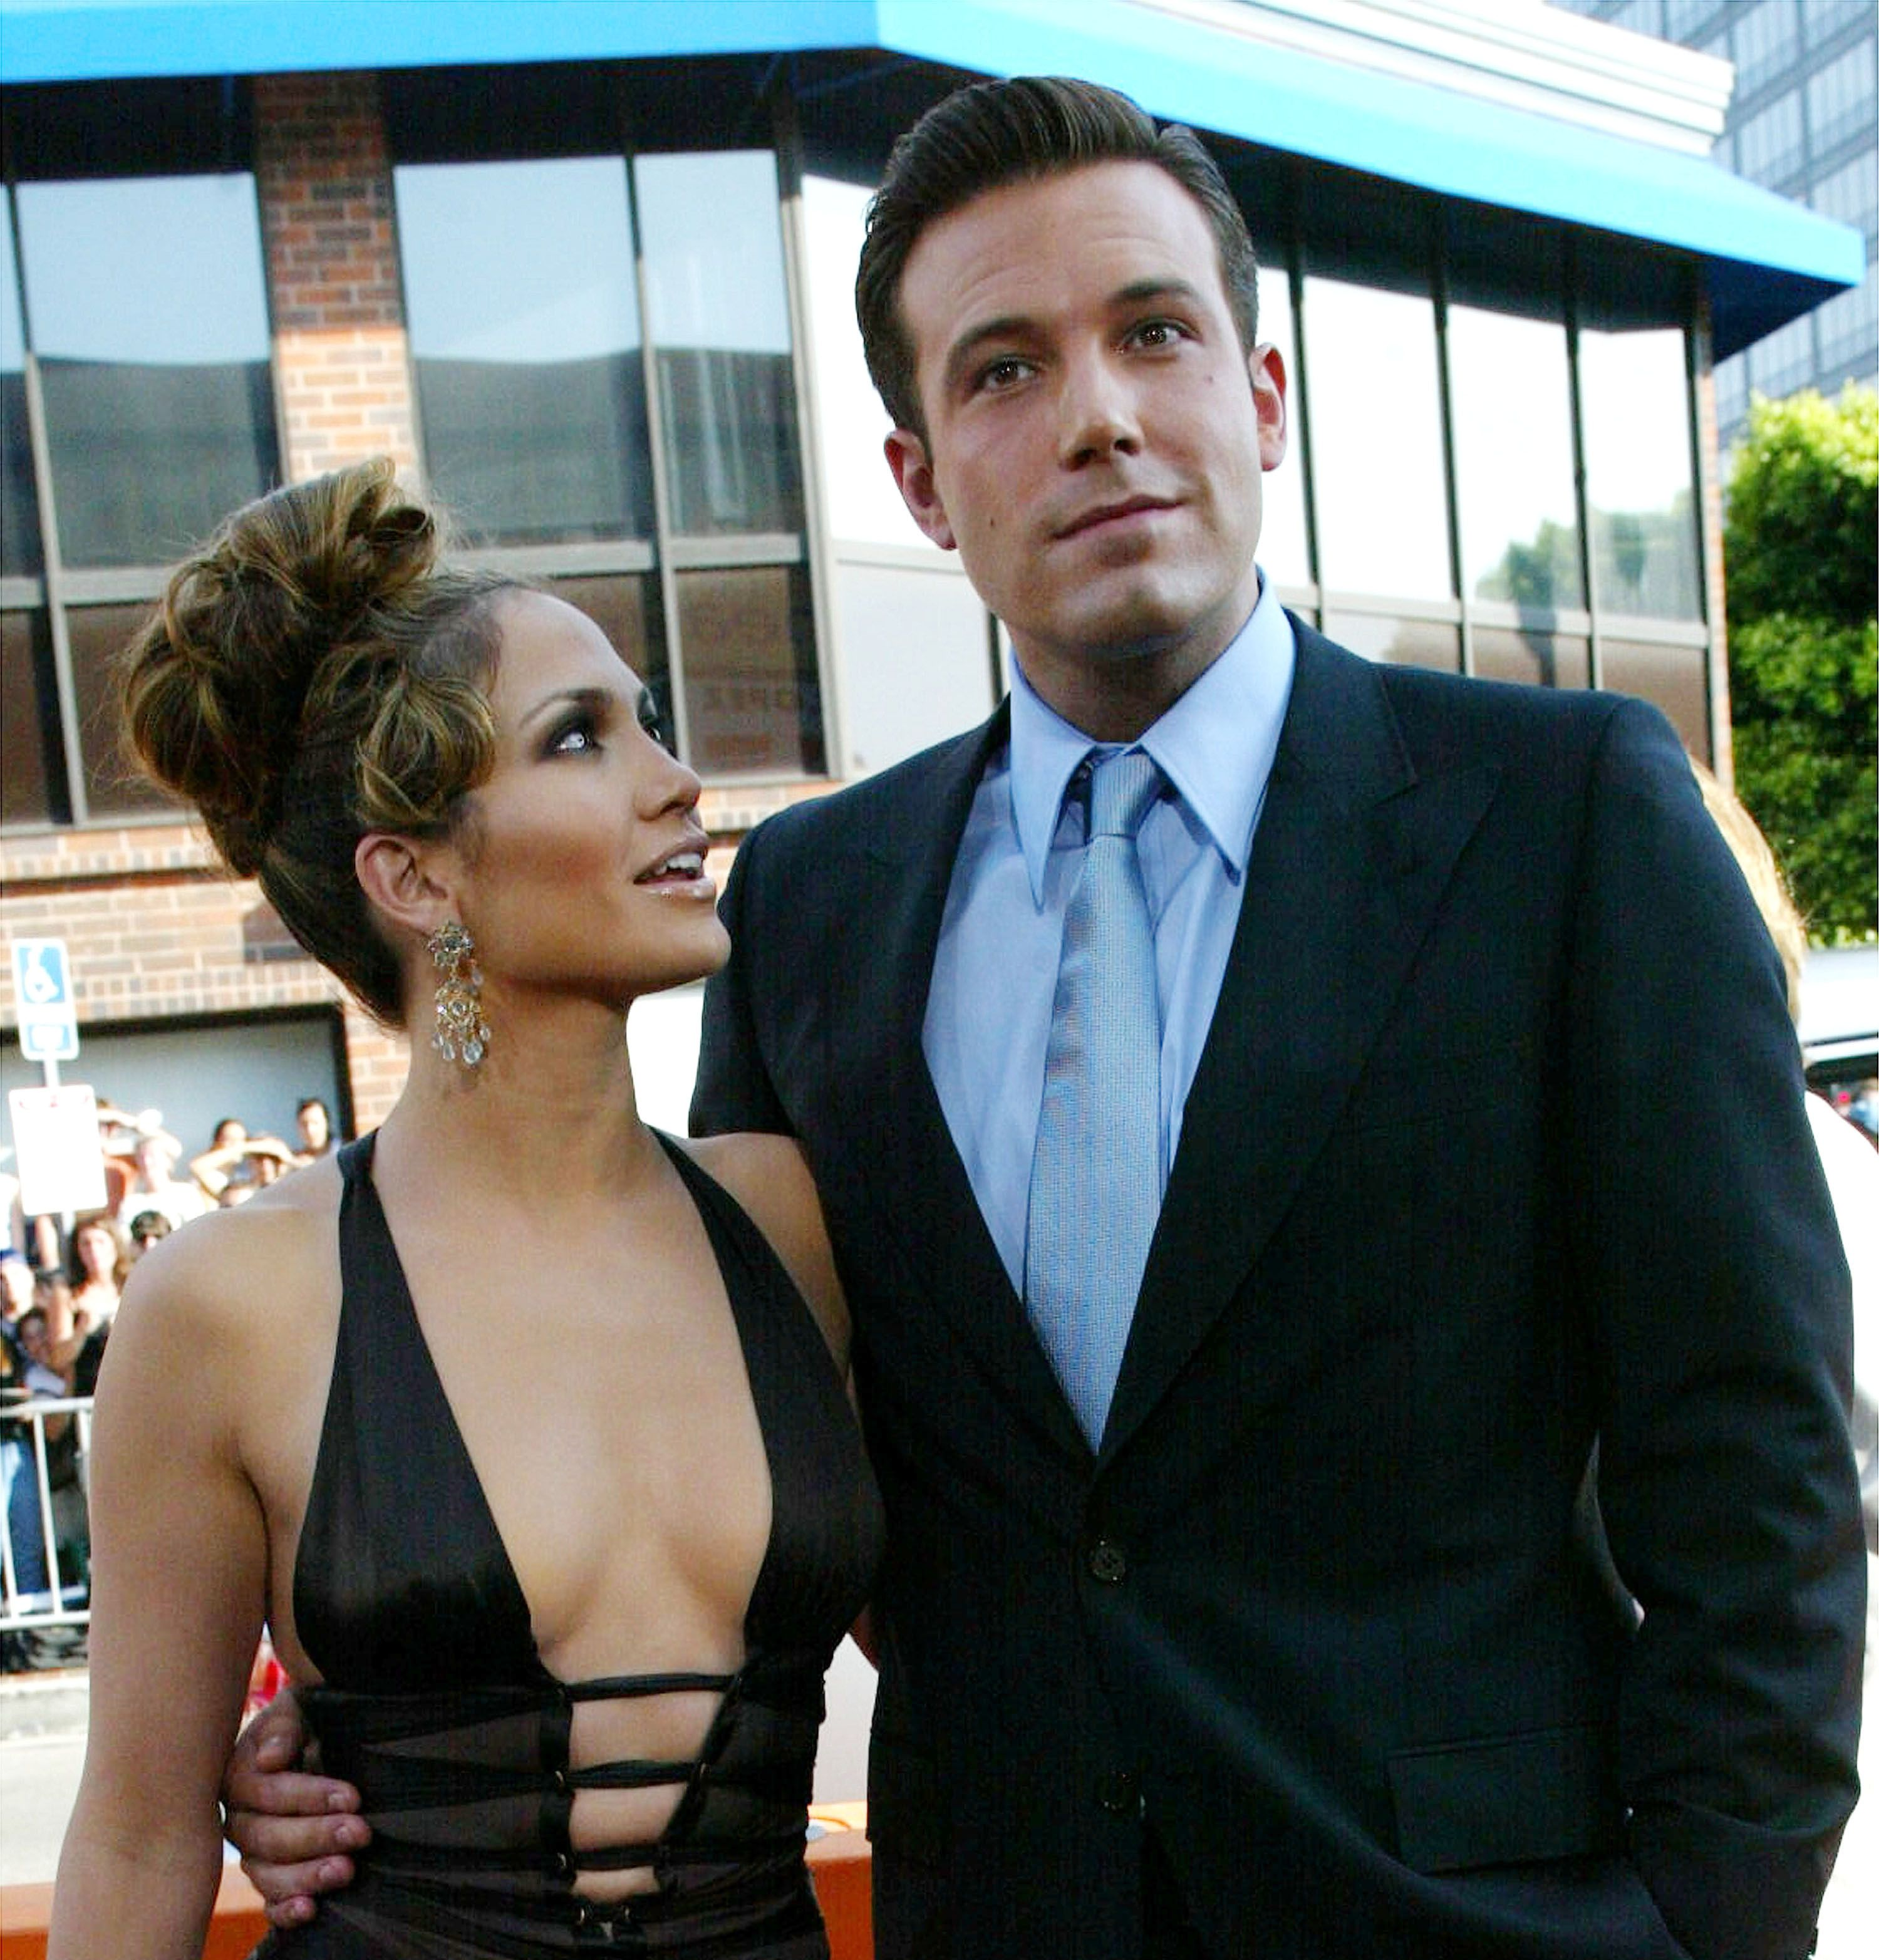 """Jennifer Lopez and Ben Affleck at the premiere of the film """"Gigli"""" on July 27, 2003, in Westwood, California 